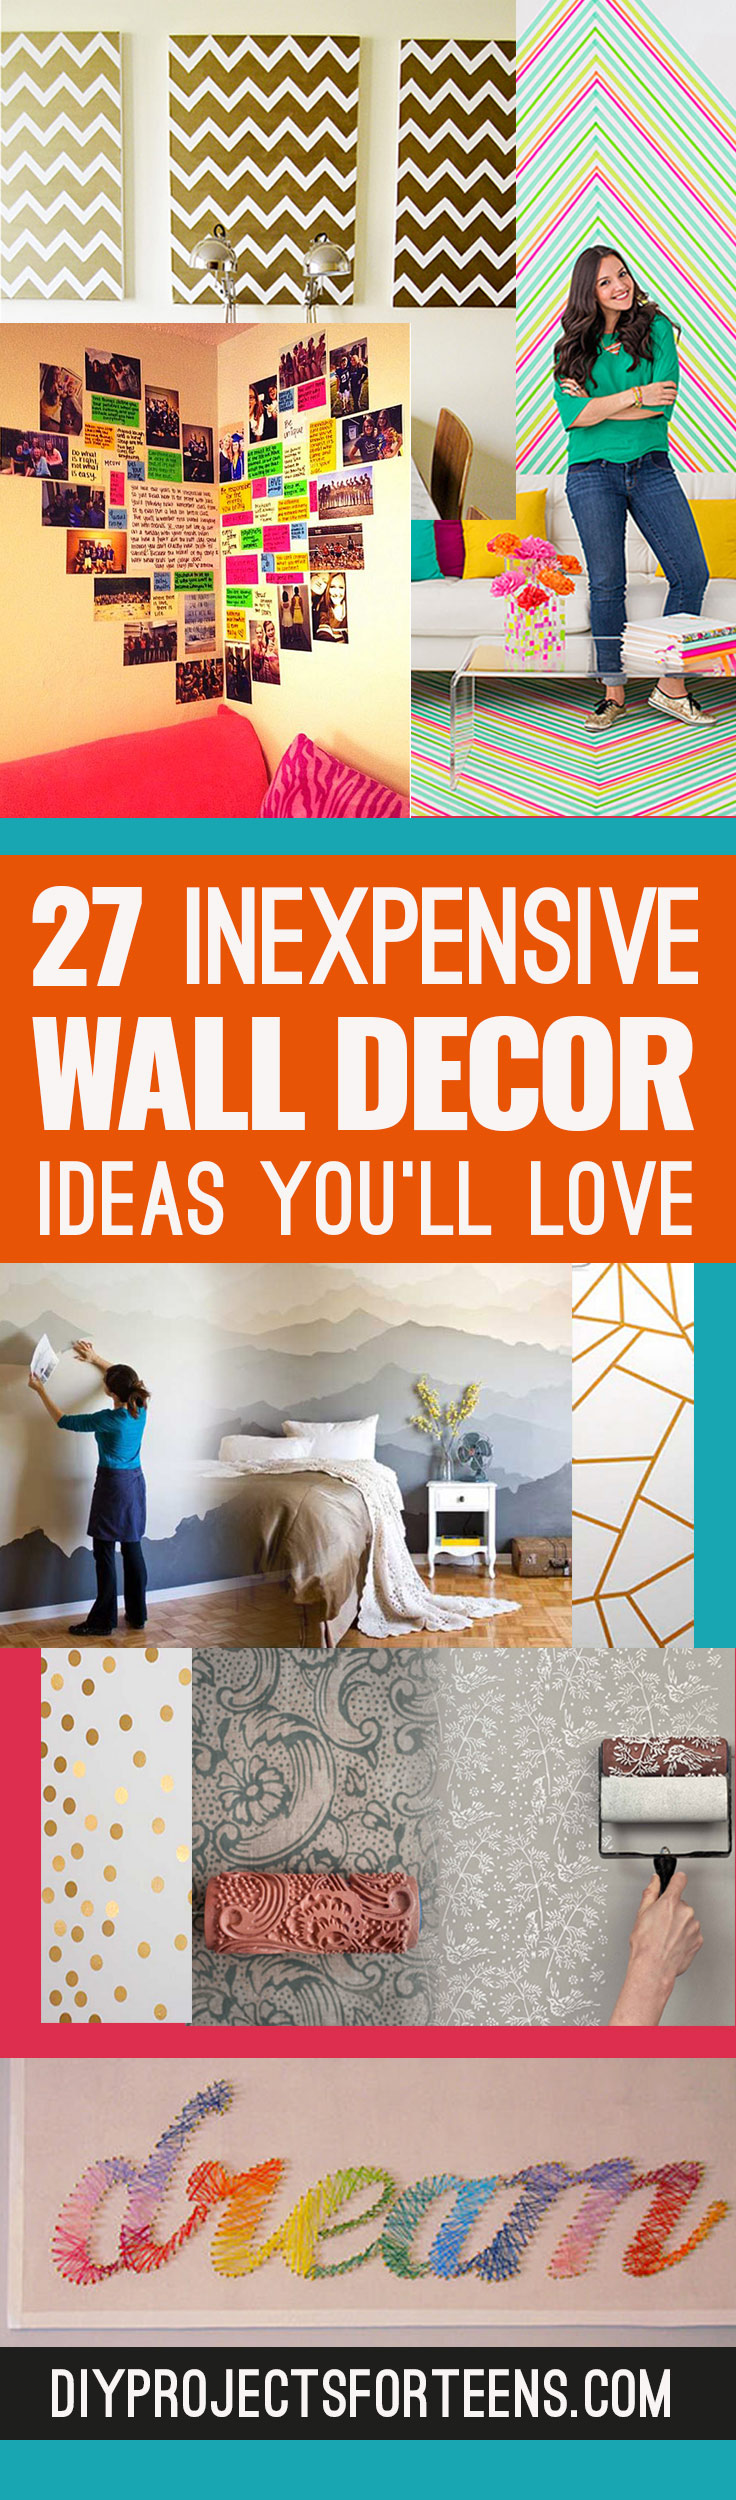 Creative bedroom wall decor ideas - Insanely Cheap Diy Wall Art Ideas You Ll Love